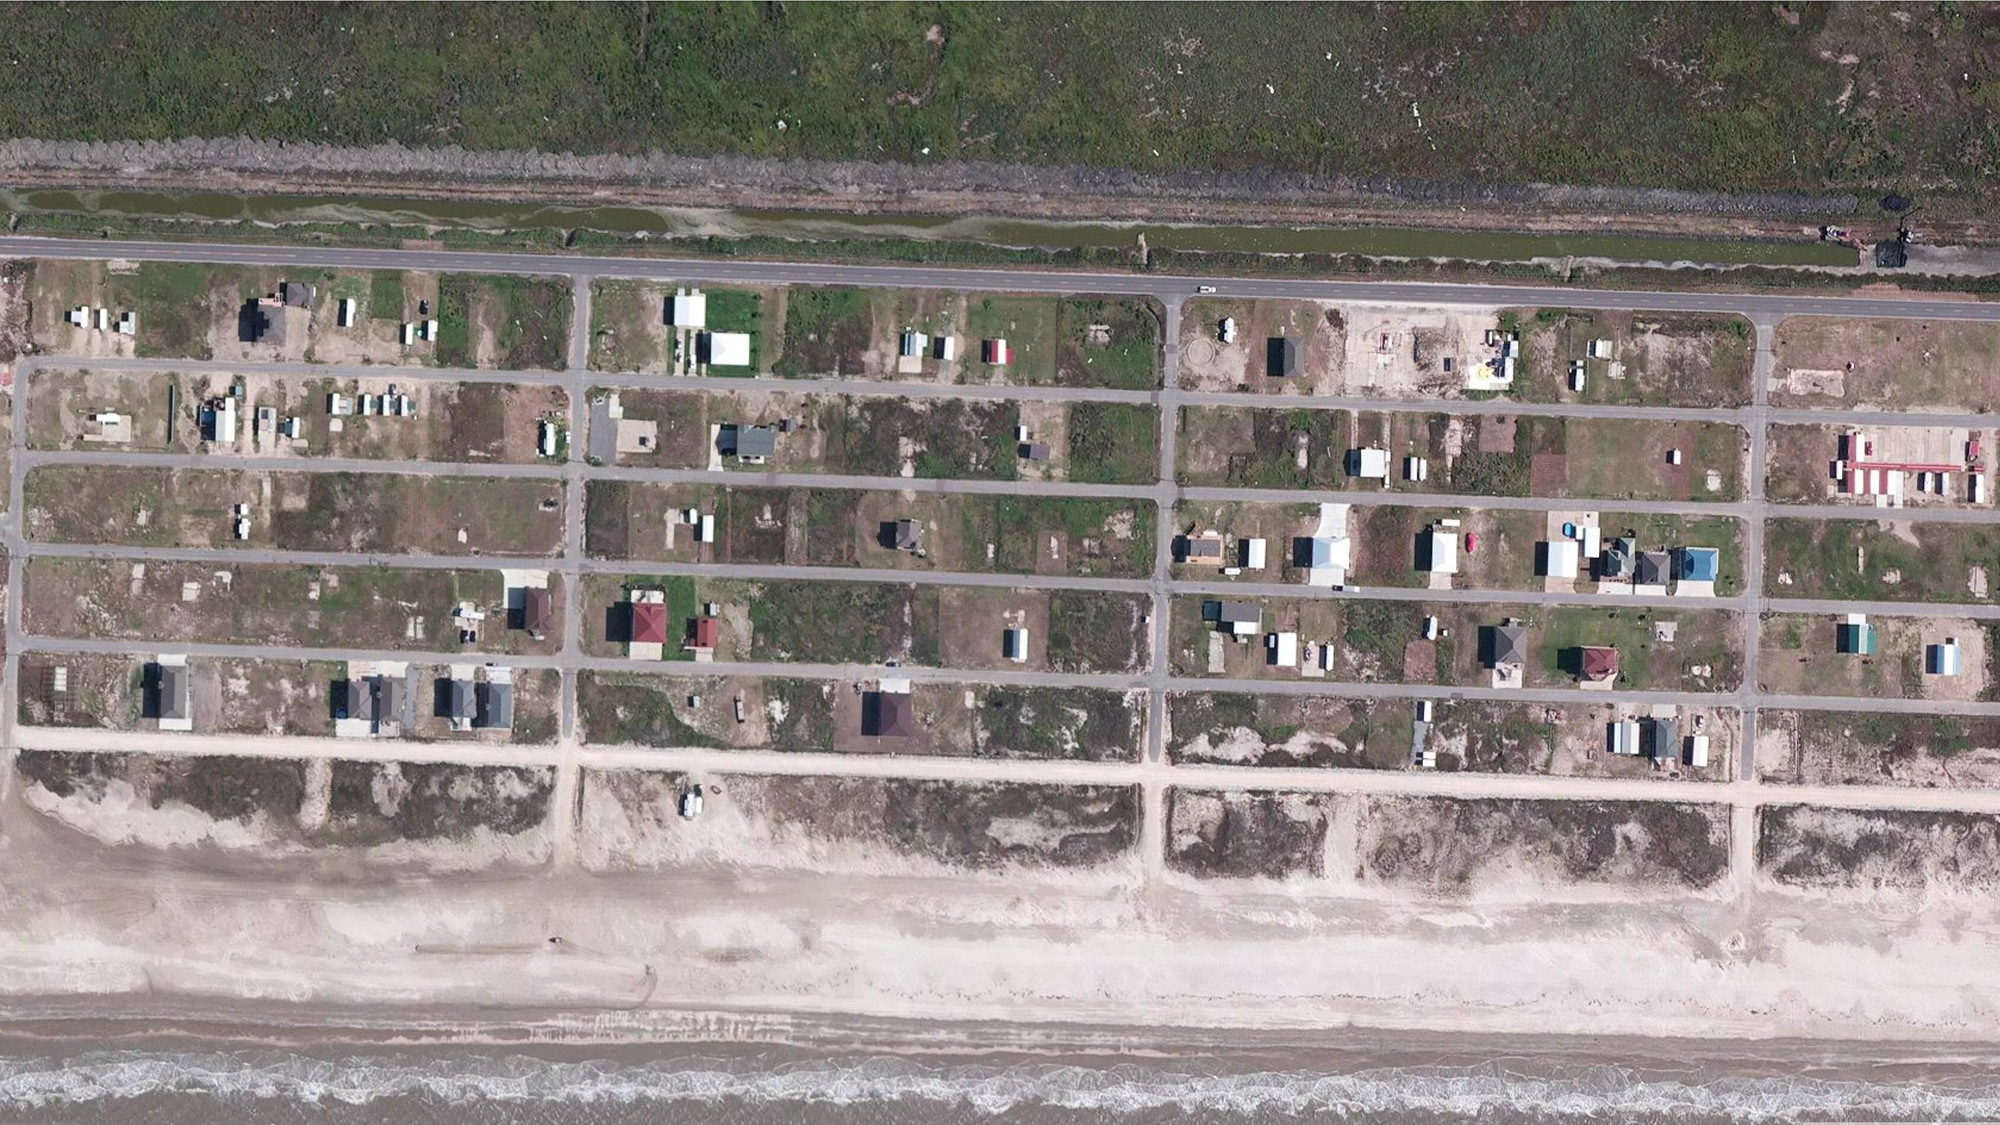 an image showing damage near Holly Beach, Louisiana after Laura